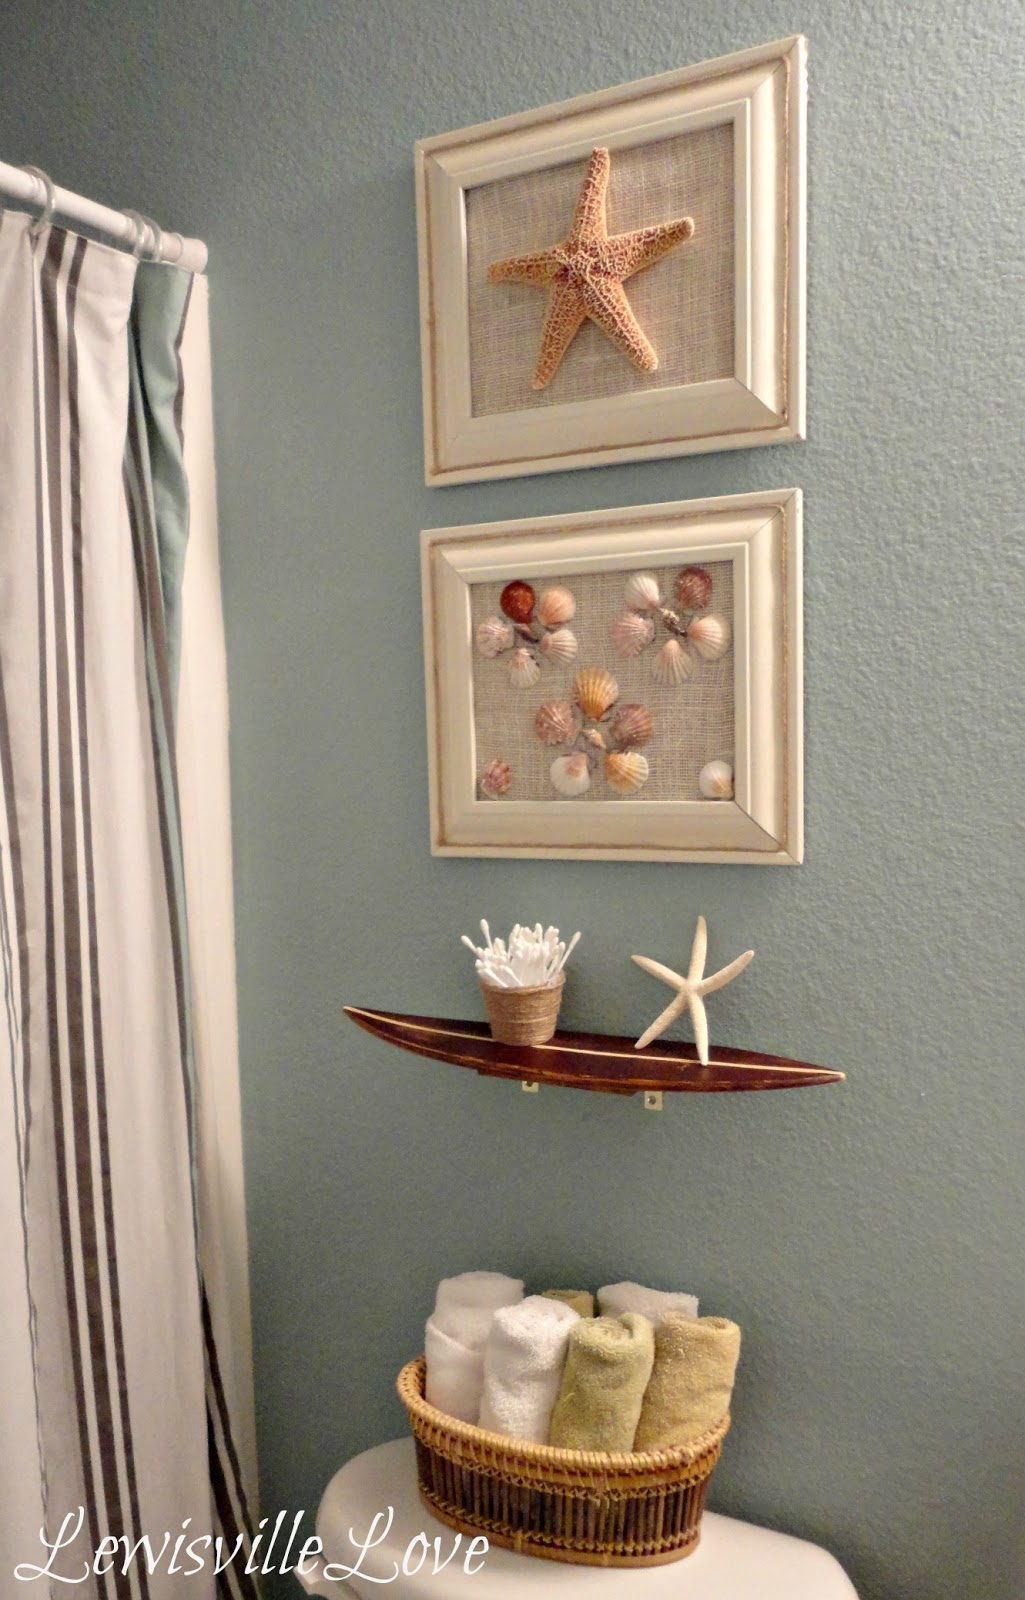 Pottery Barn Kids Bathroom Ideas Lewisville Love Beach Theme Bathroom Reveal